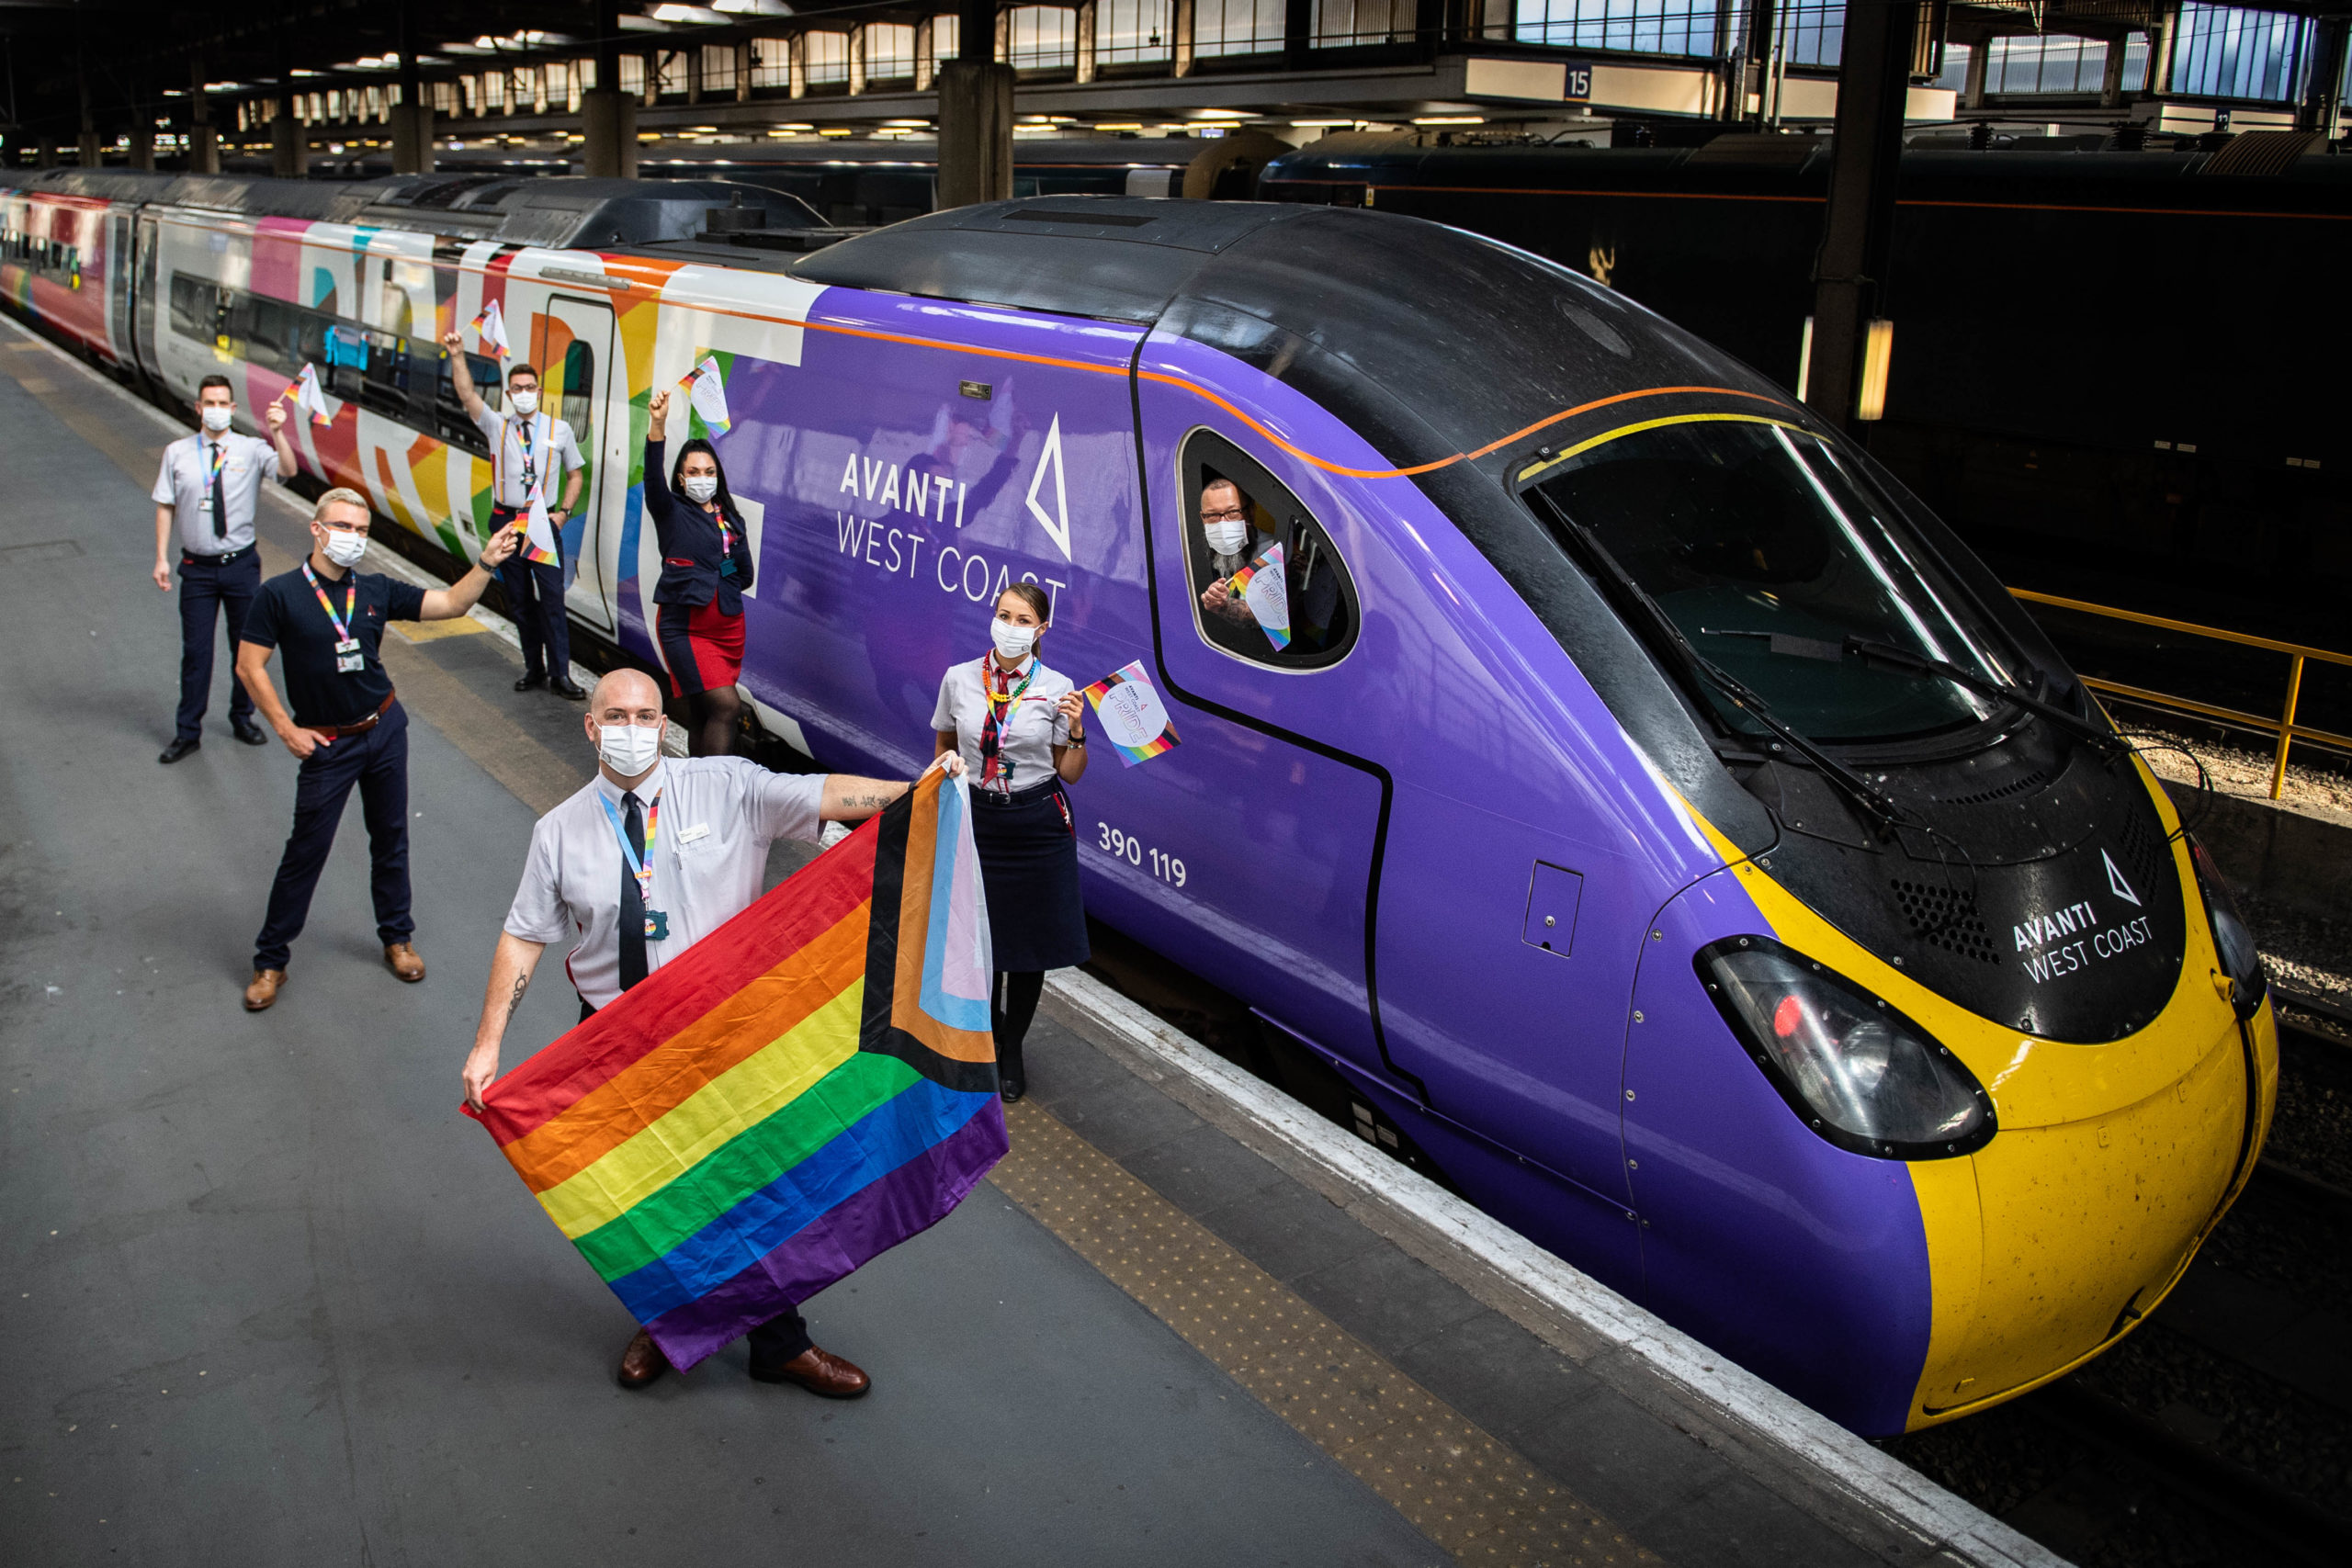 The train was waved off by Avanti West Coast staff and members of the LGBTQ+ community at Euston on Tuesday 25 August.